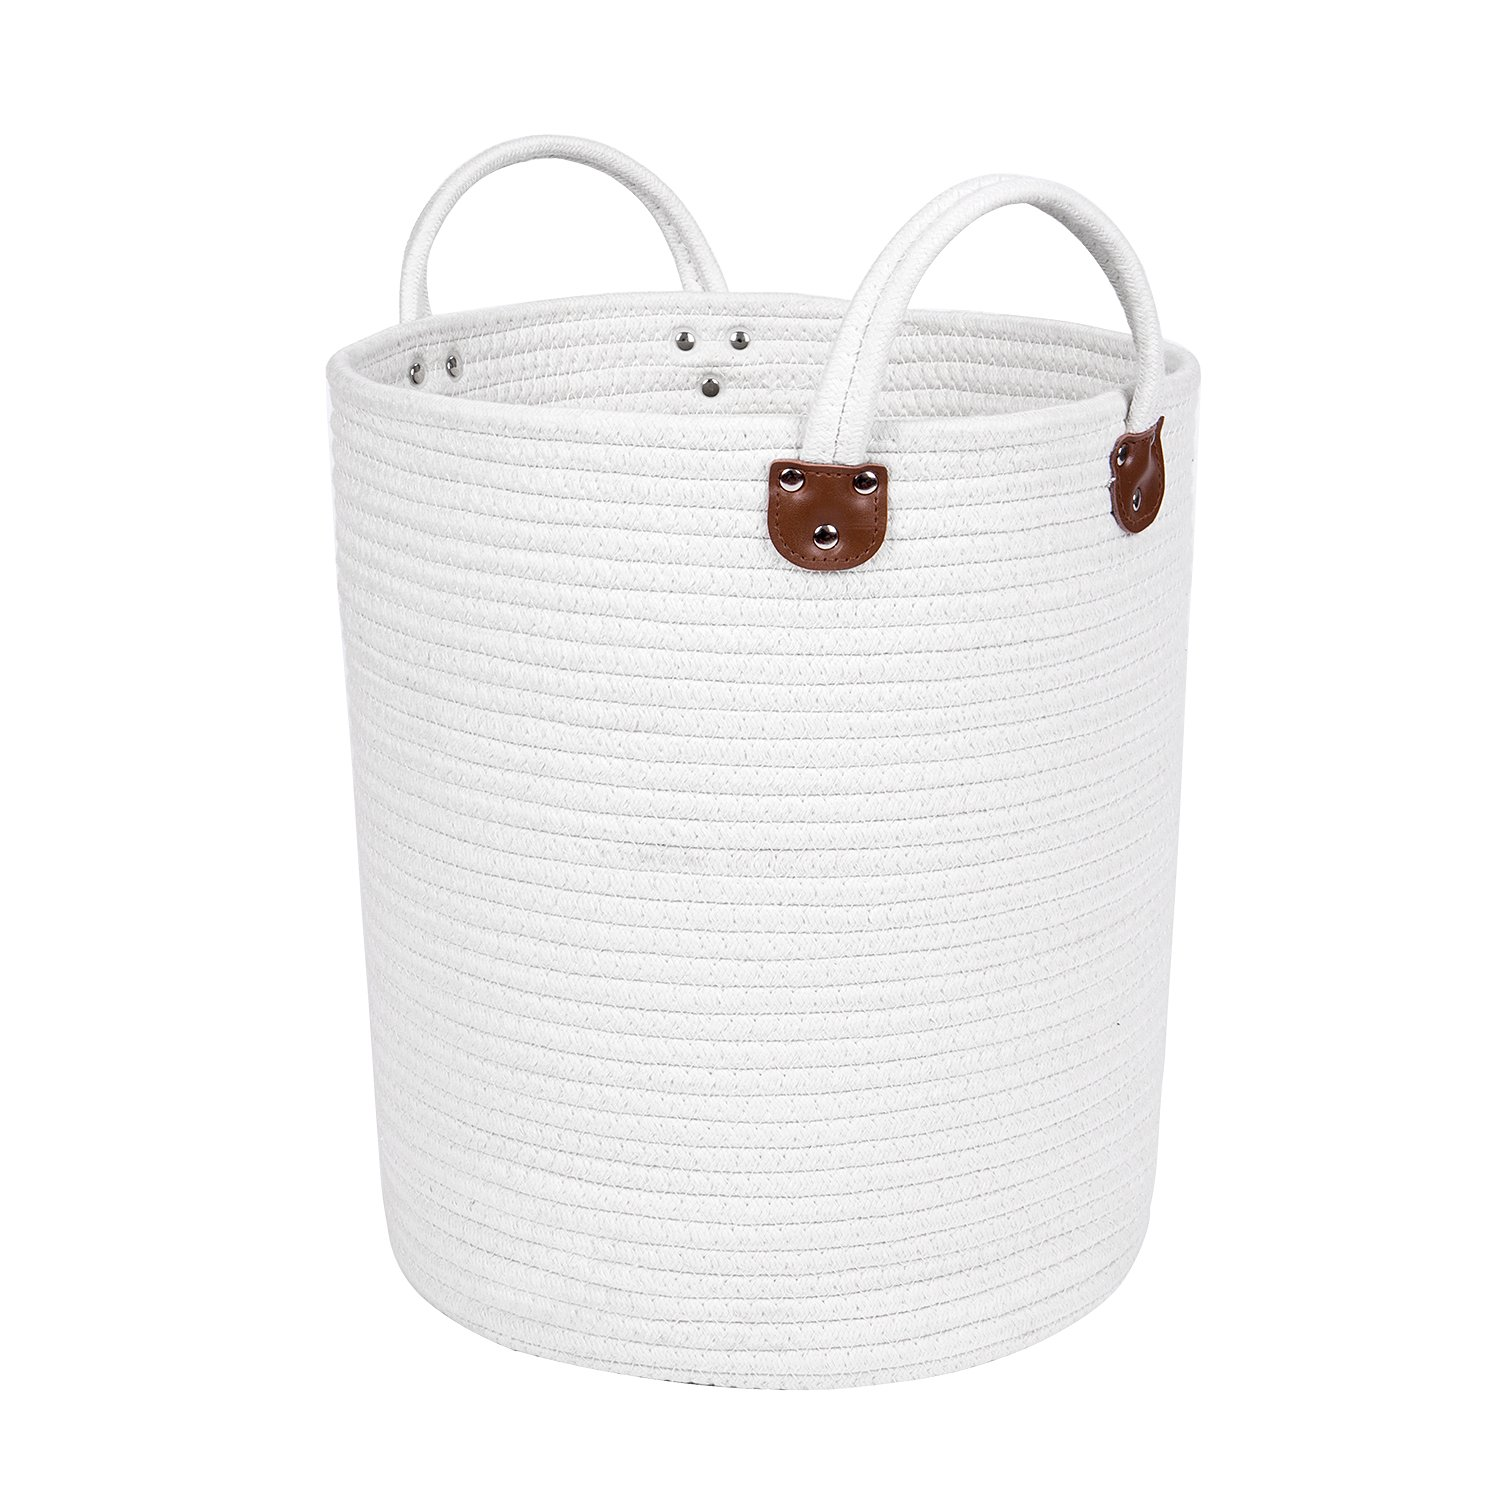 Woven Cotton Rope Storage Basket - 15'' x 13'' Medium-sized Natural Home Decor Baskets with Leather Handles for Organizing Blankets, Towels, Laundry, Toys - White